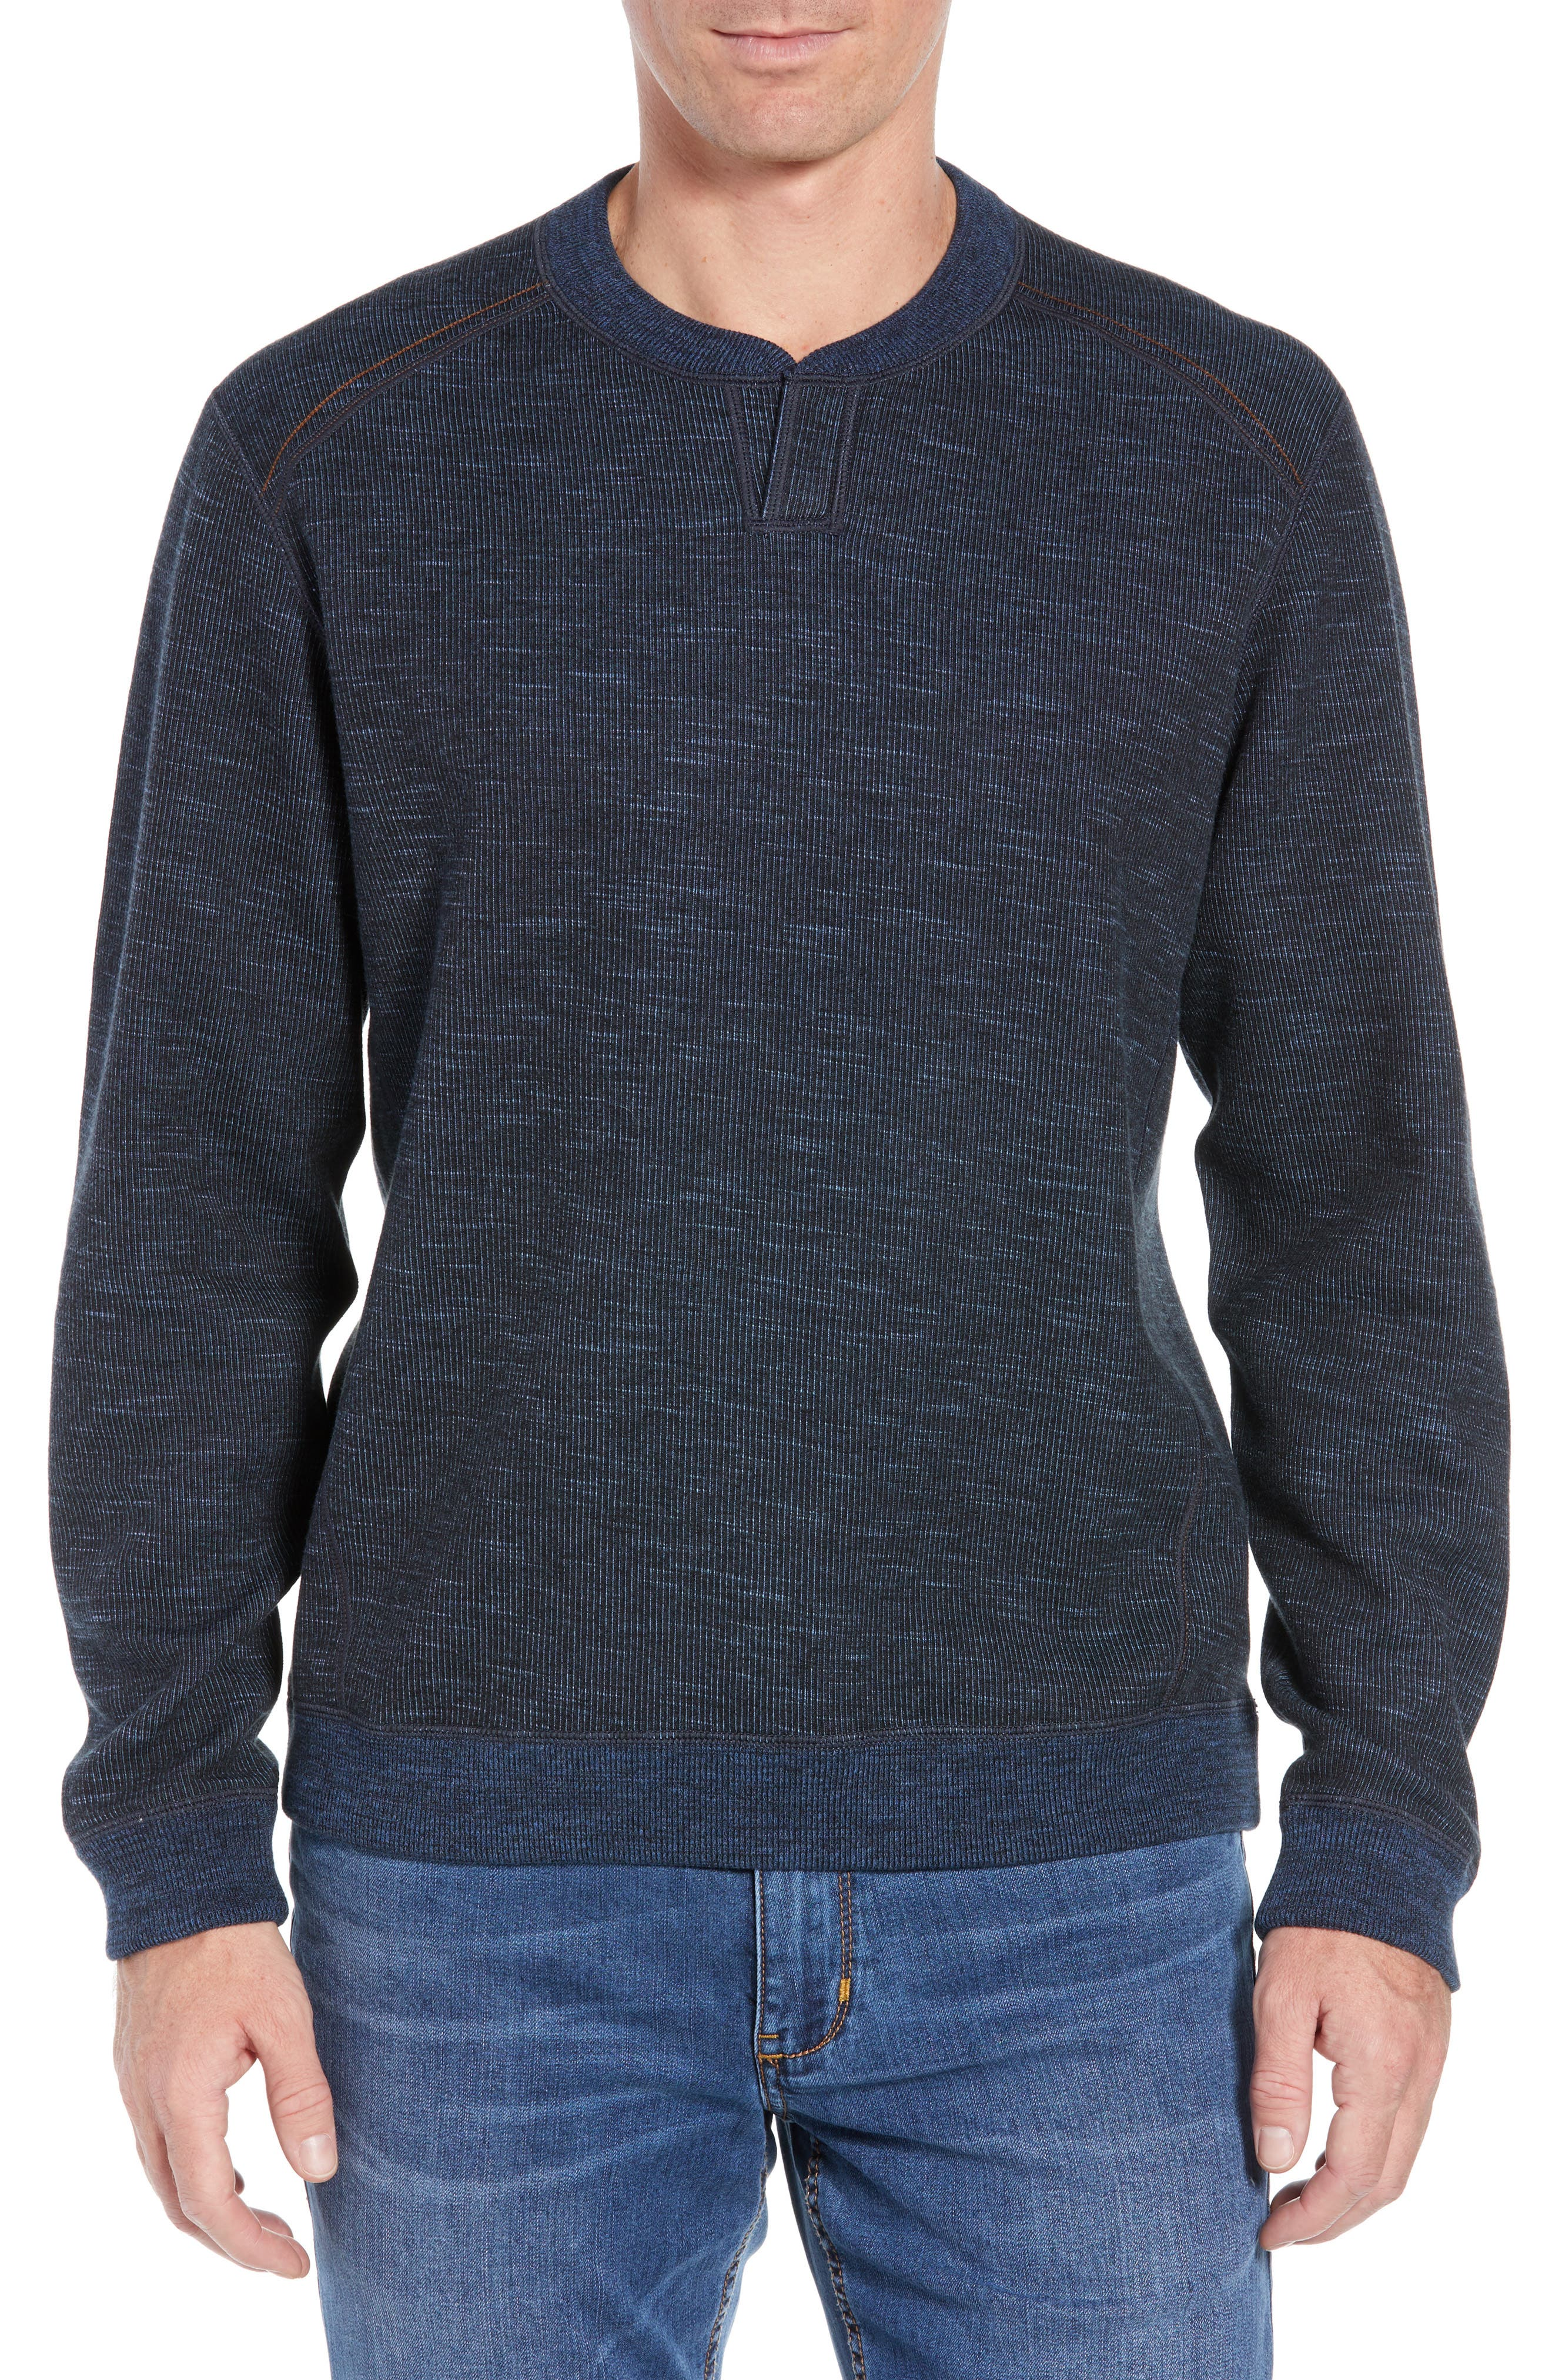 Flipsider Abaco Pullover,                         Main,                         color, JET BLACK